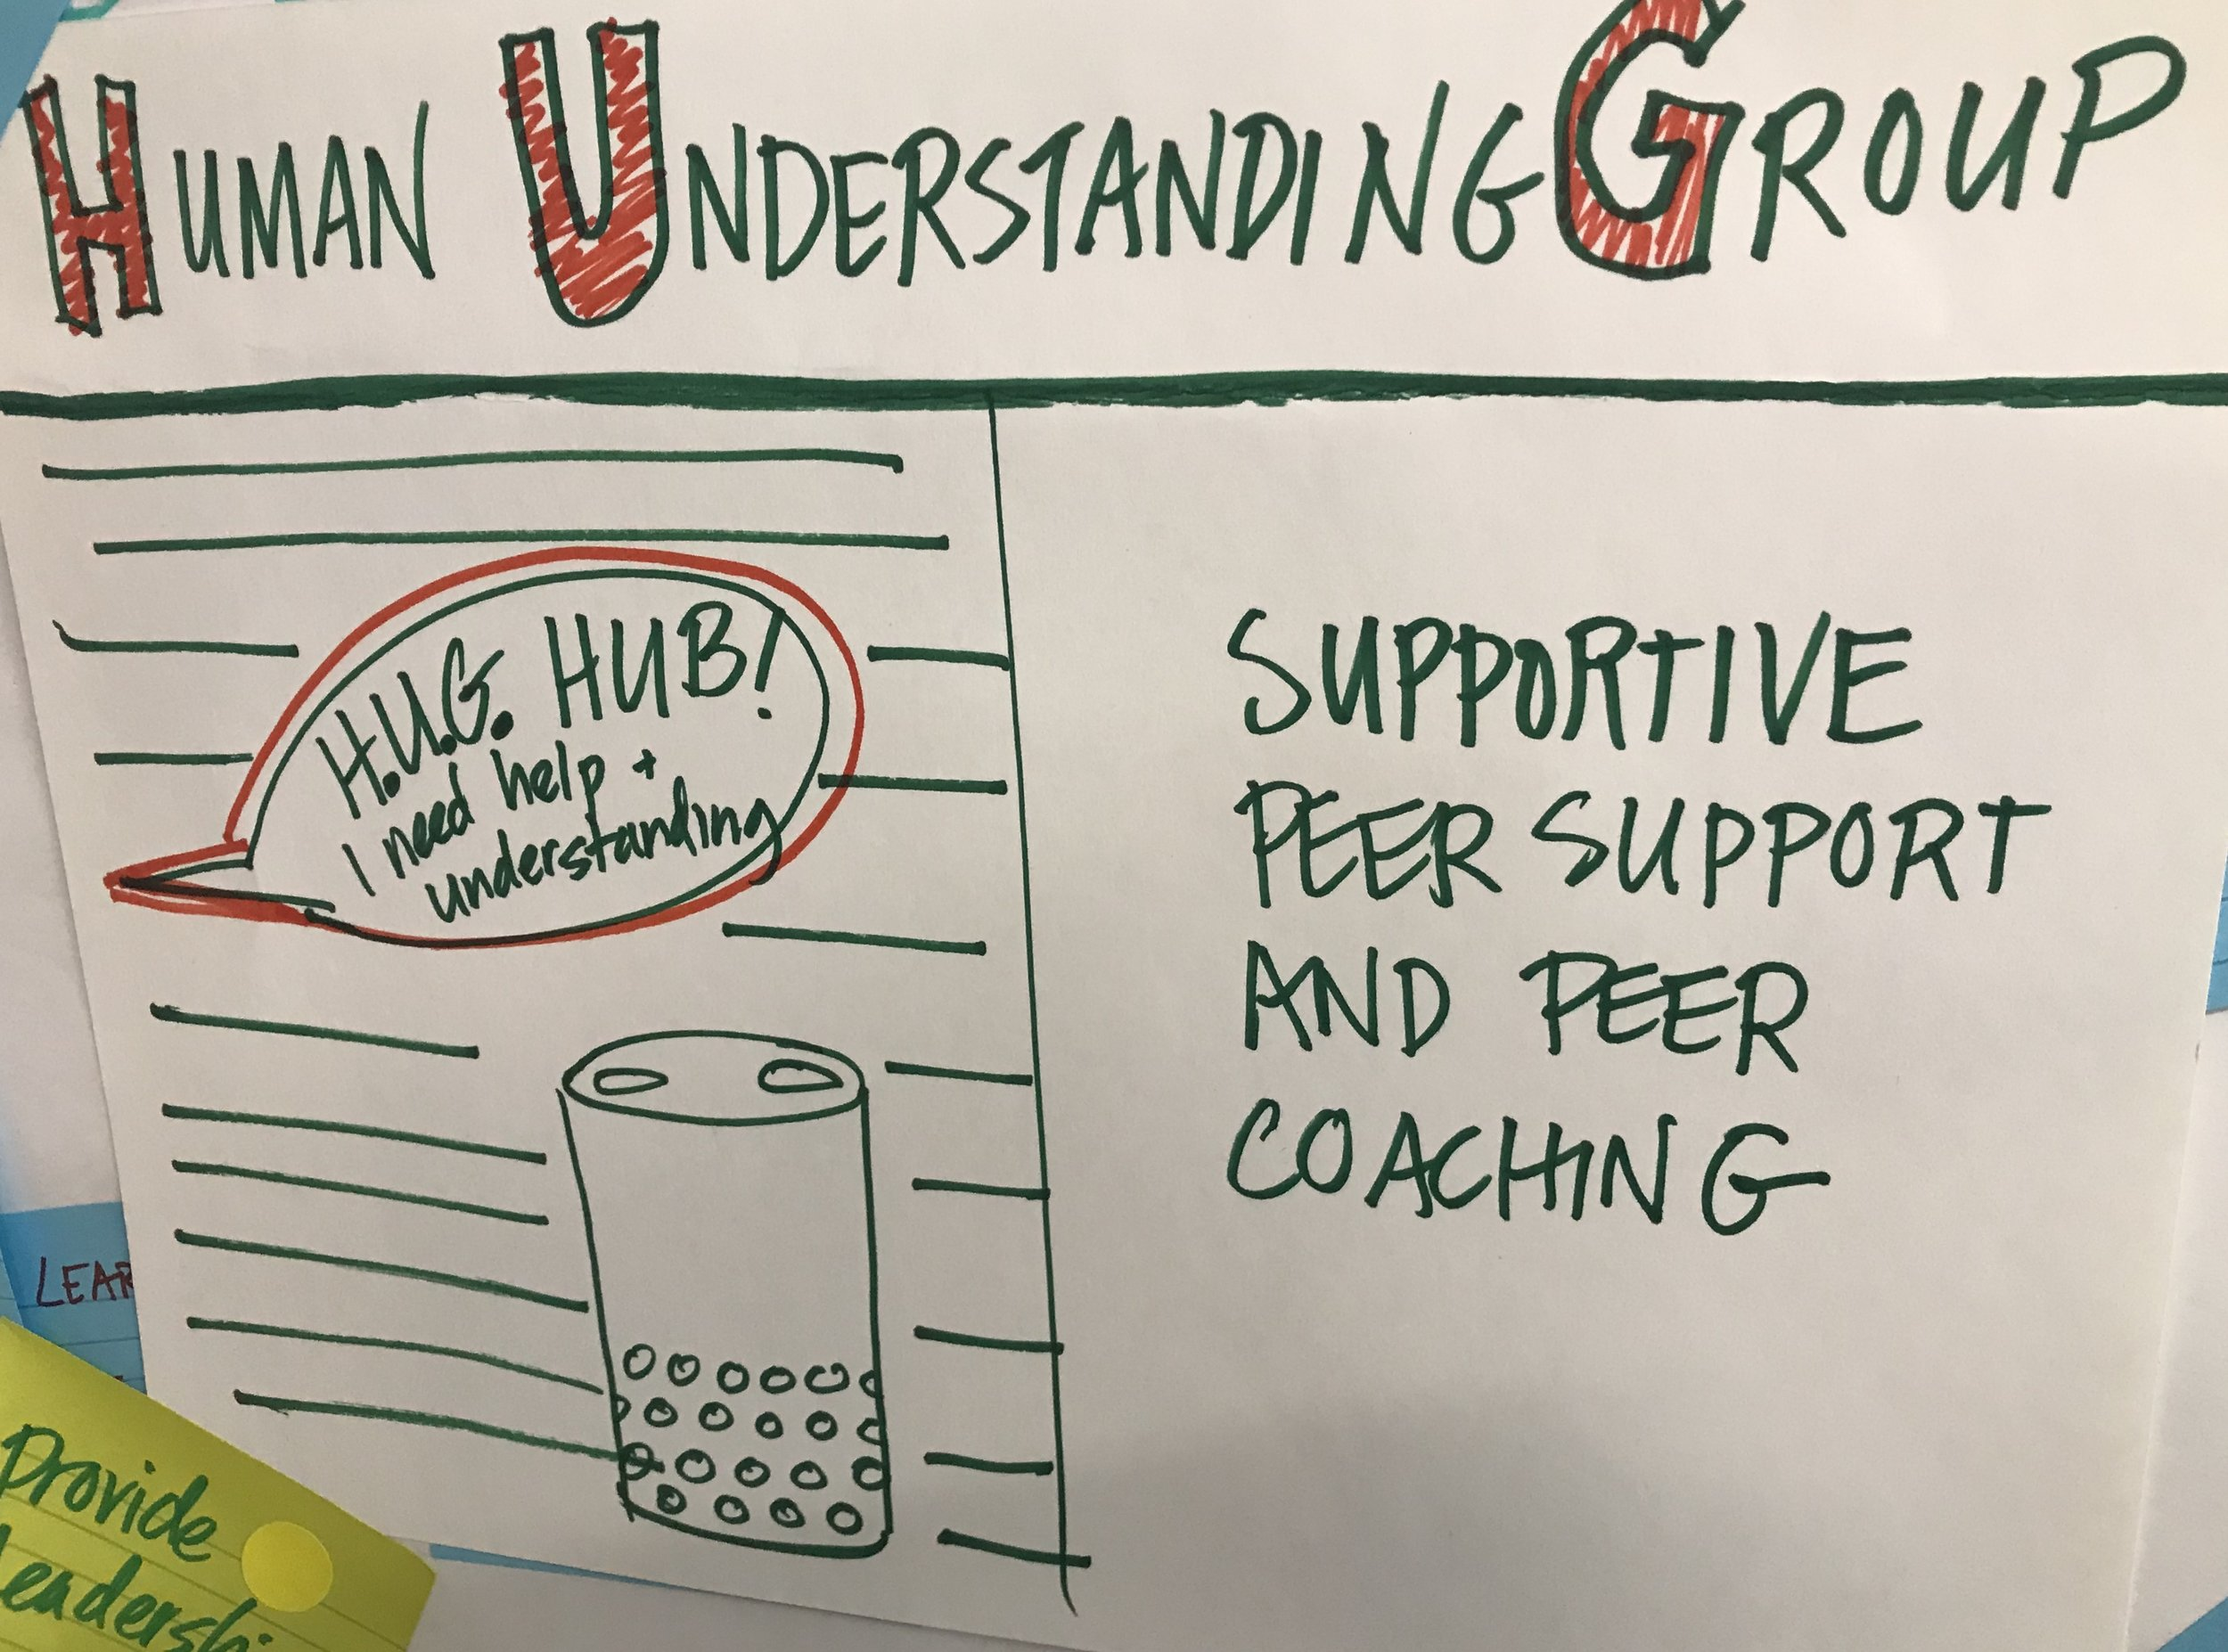 Human Understanding Group